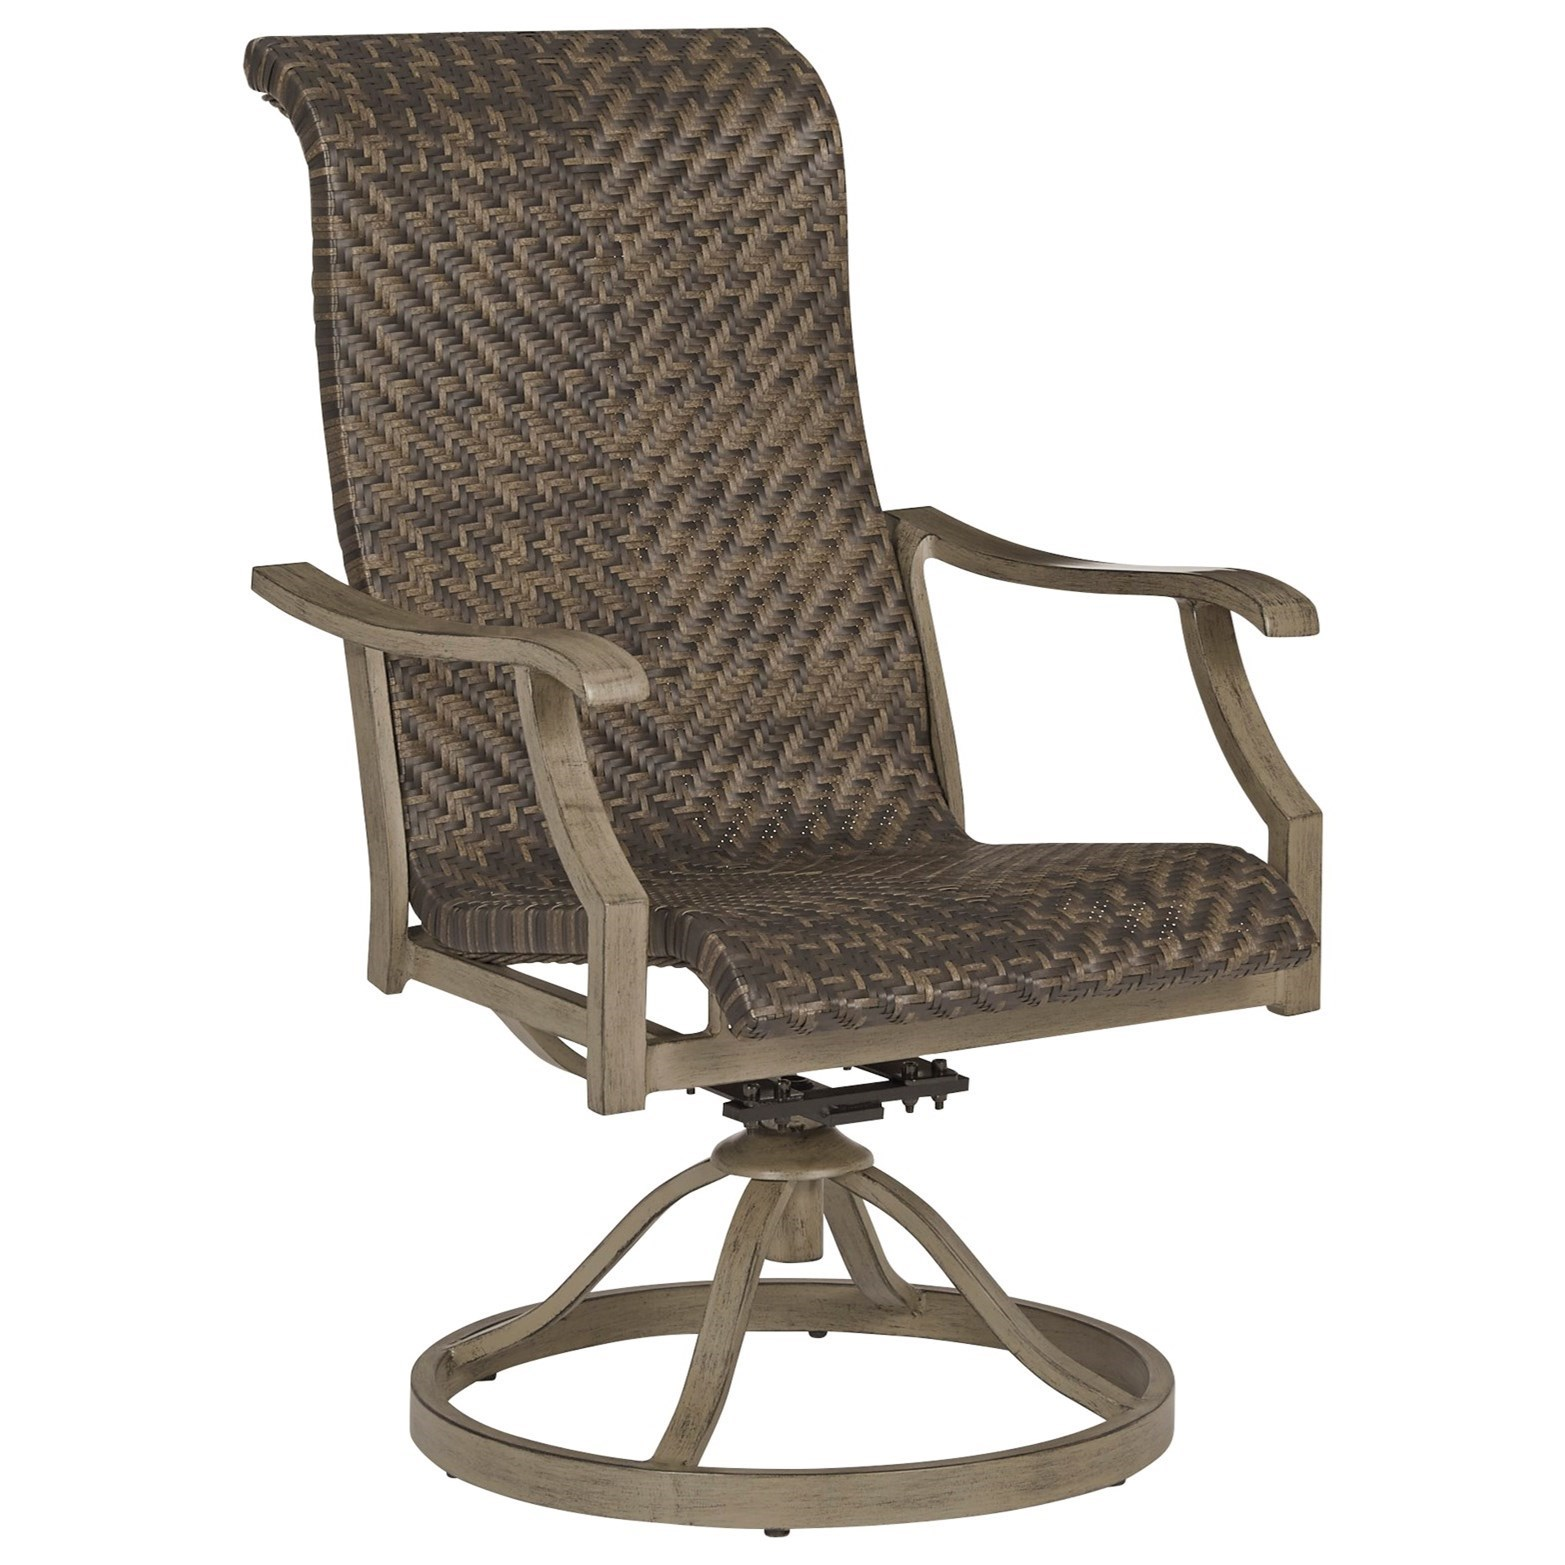 Windon Barn Swivel Chair by Signature at Walker's Furniture